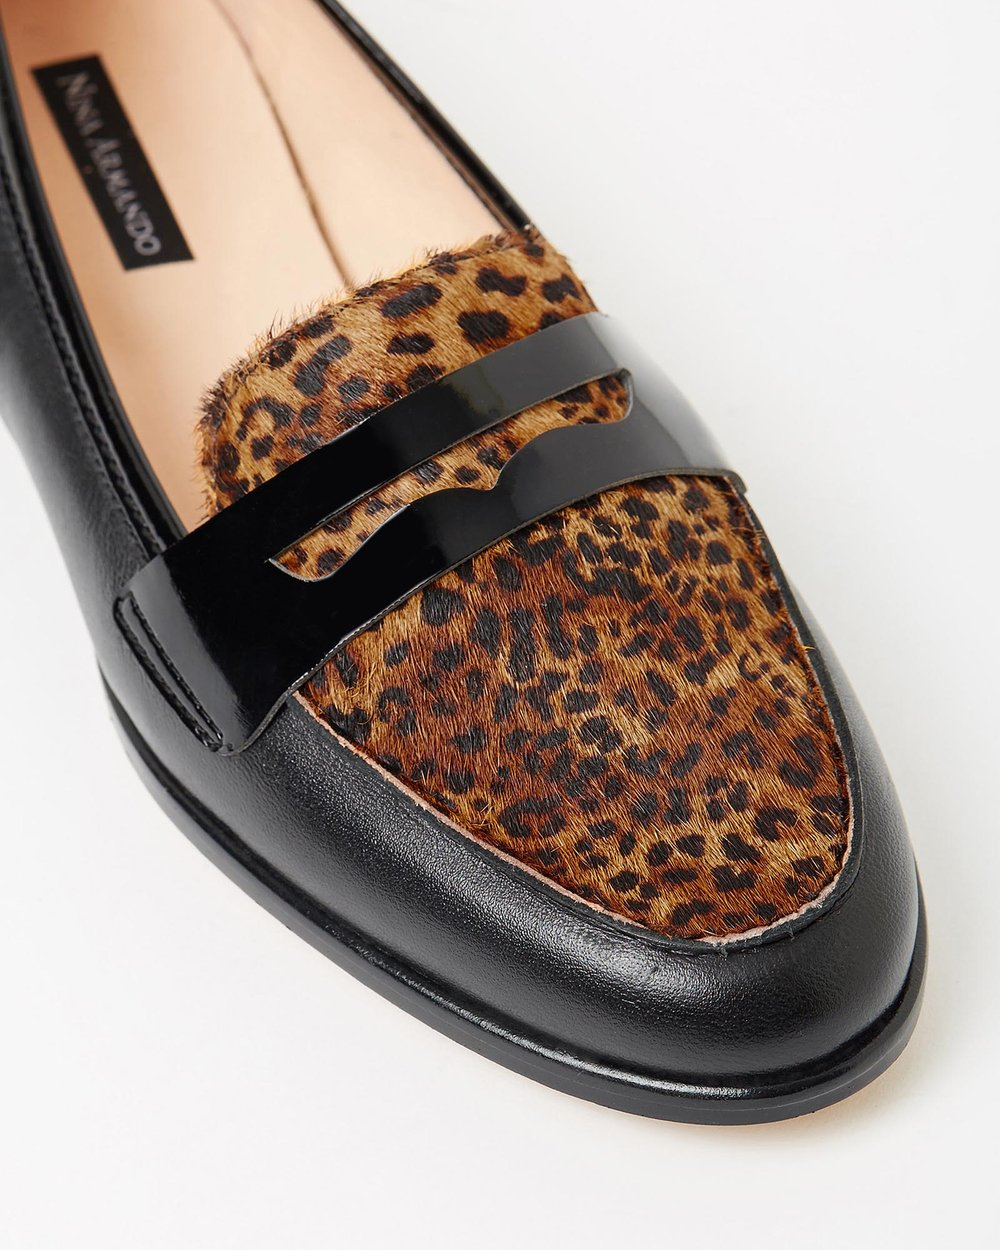 Gwendolyn - Black with Leopard